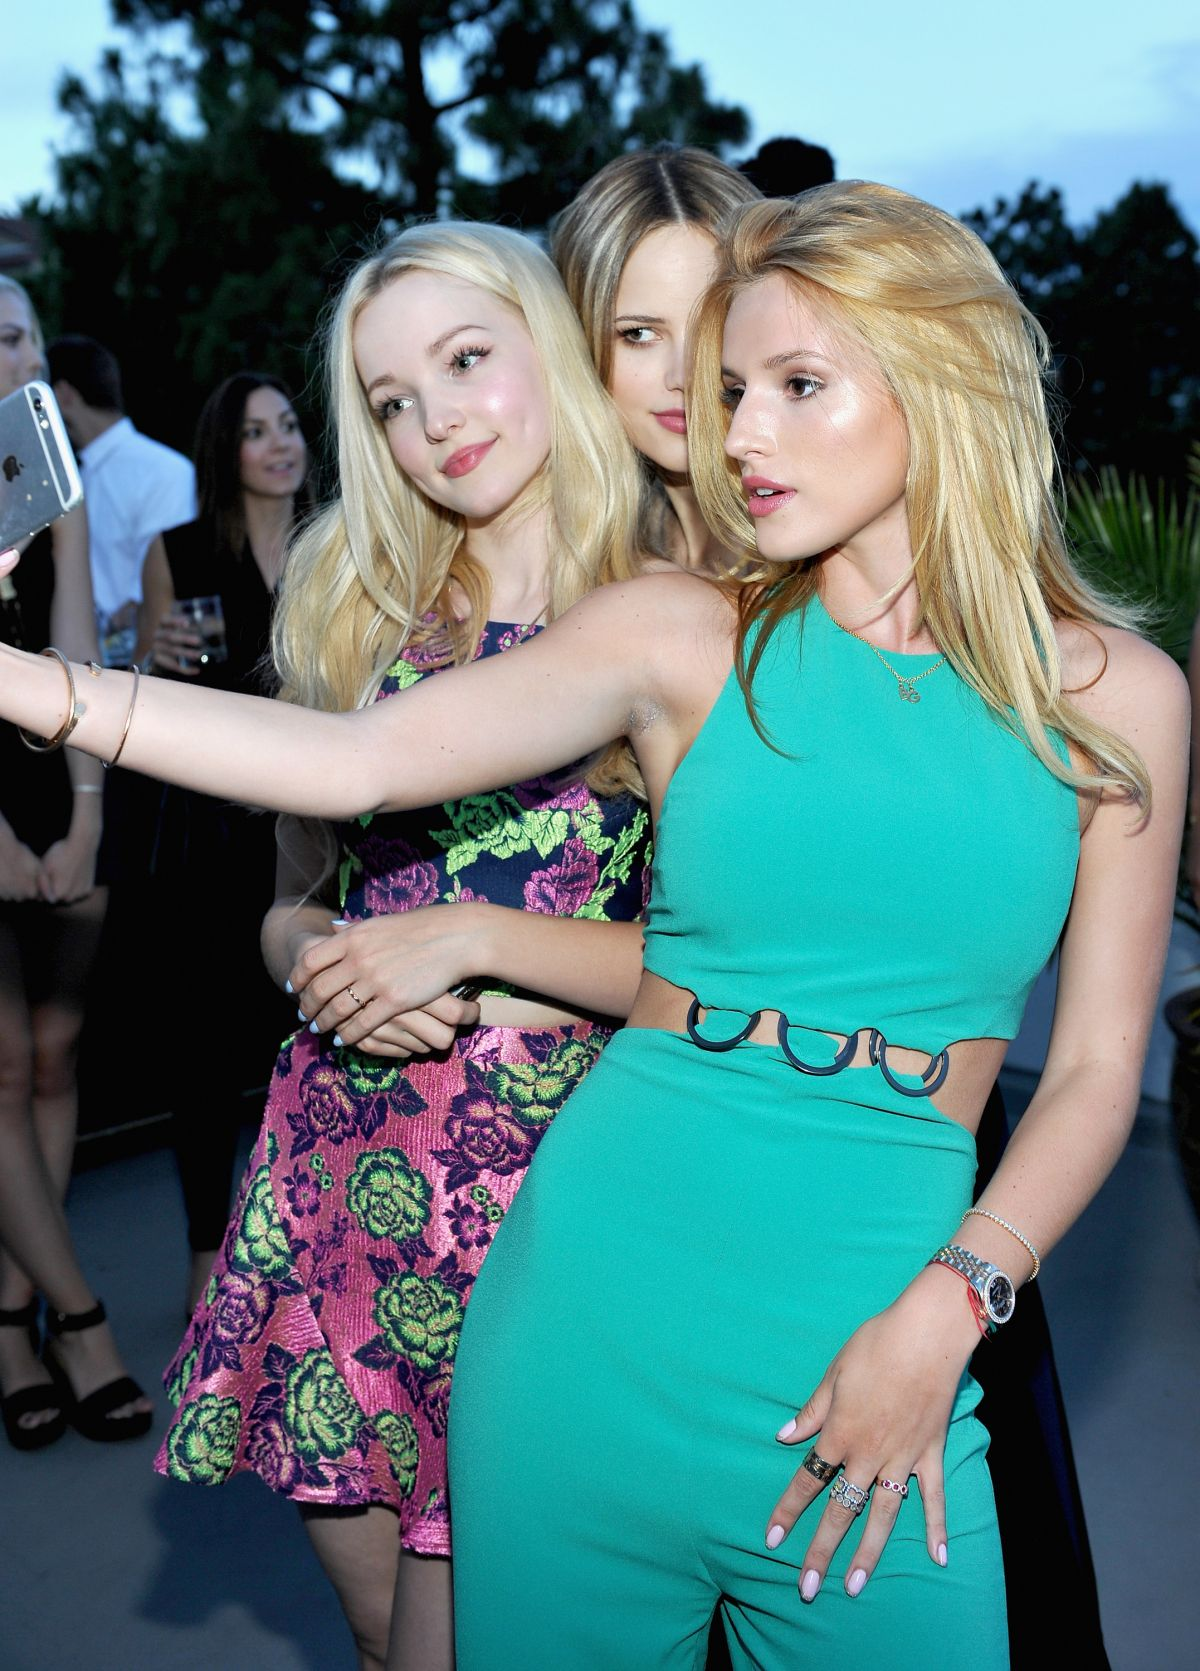 BELLA THORNE at Teen Vouge Dinner Party in Los Angeles 08/05/2015